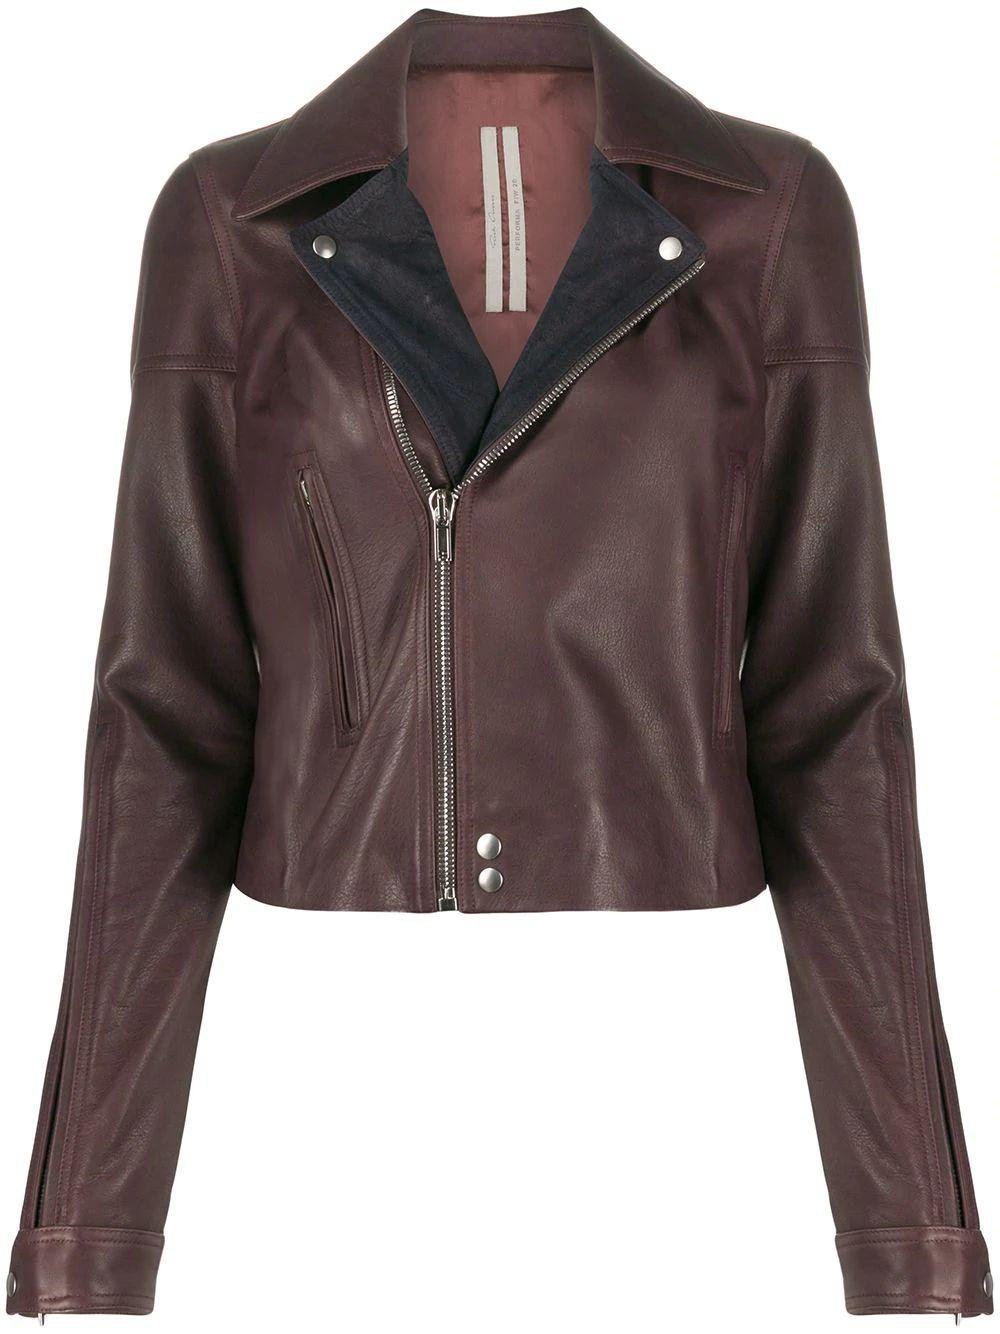 Dracubiker Leather Biker Jacket